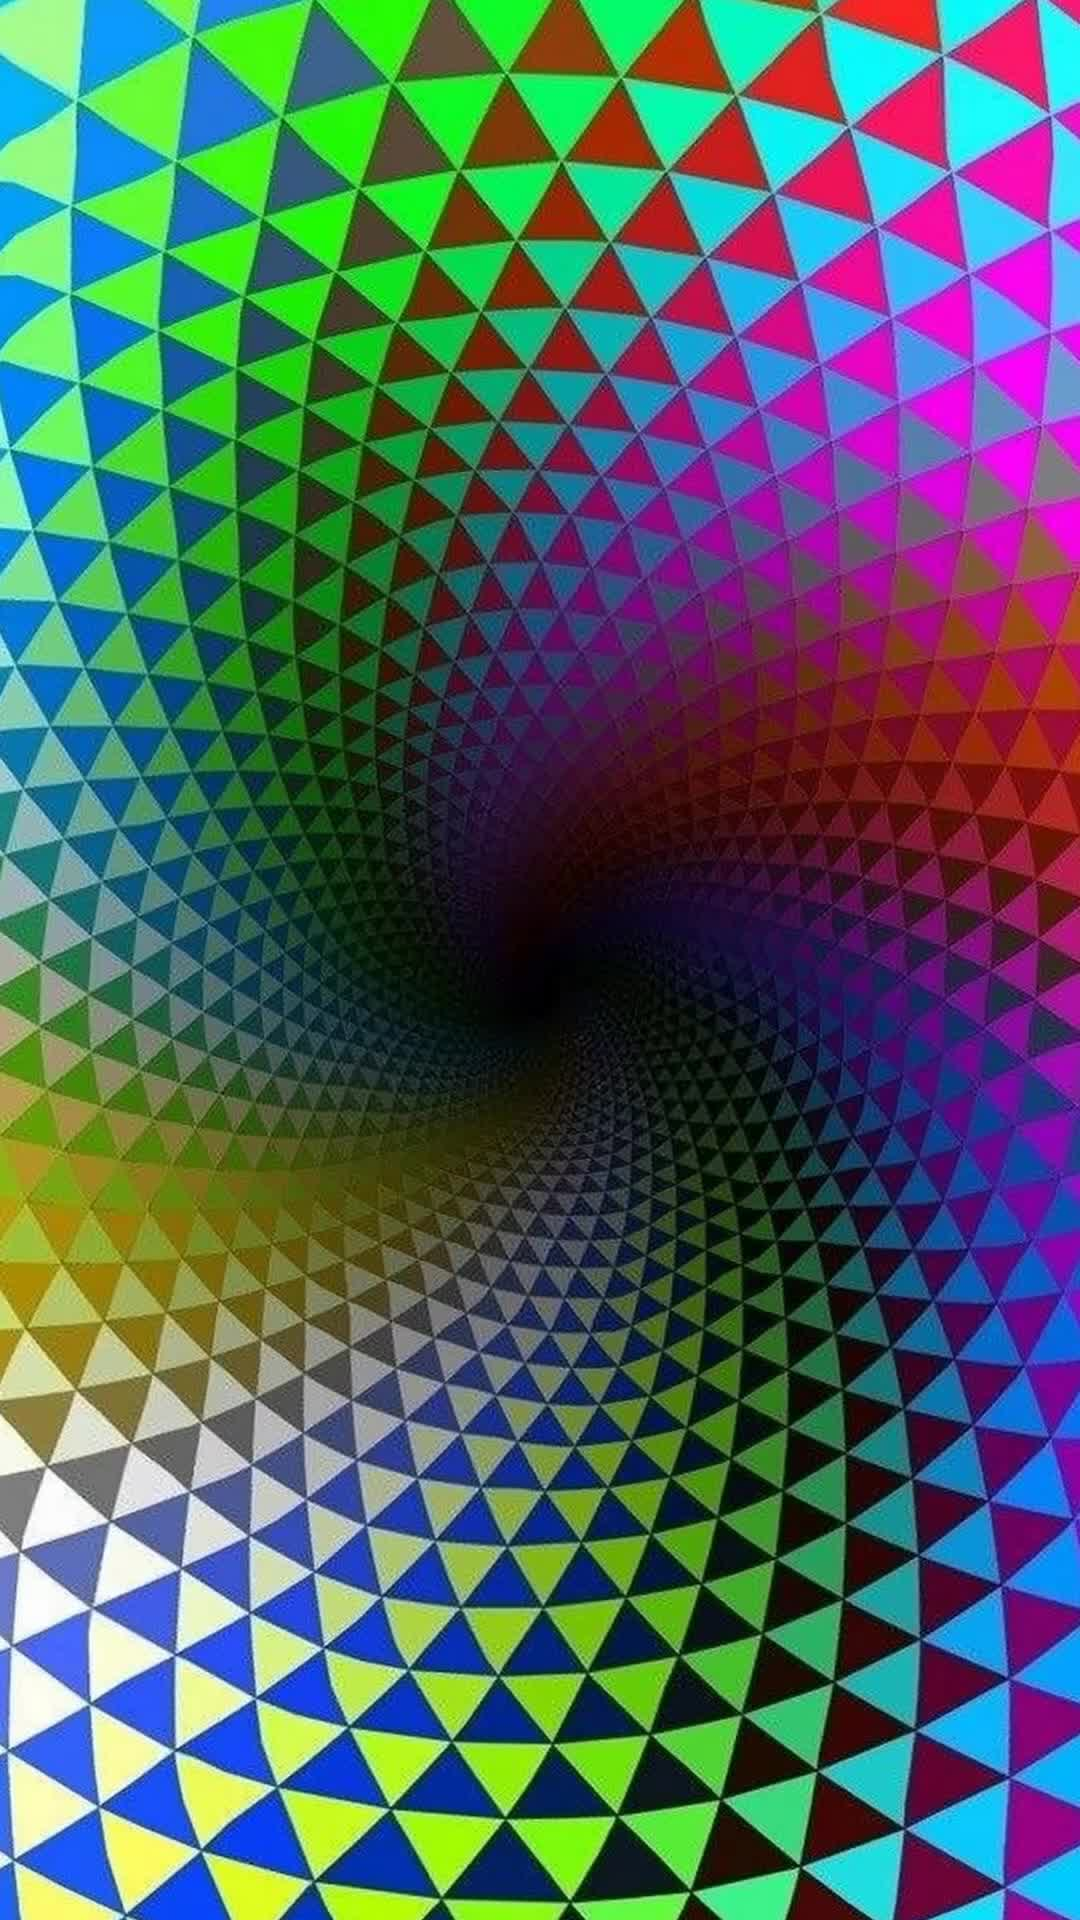 art, mirage, moving, psychedelic, trippy, wallpaper, Psychedelic GIFs